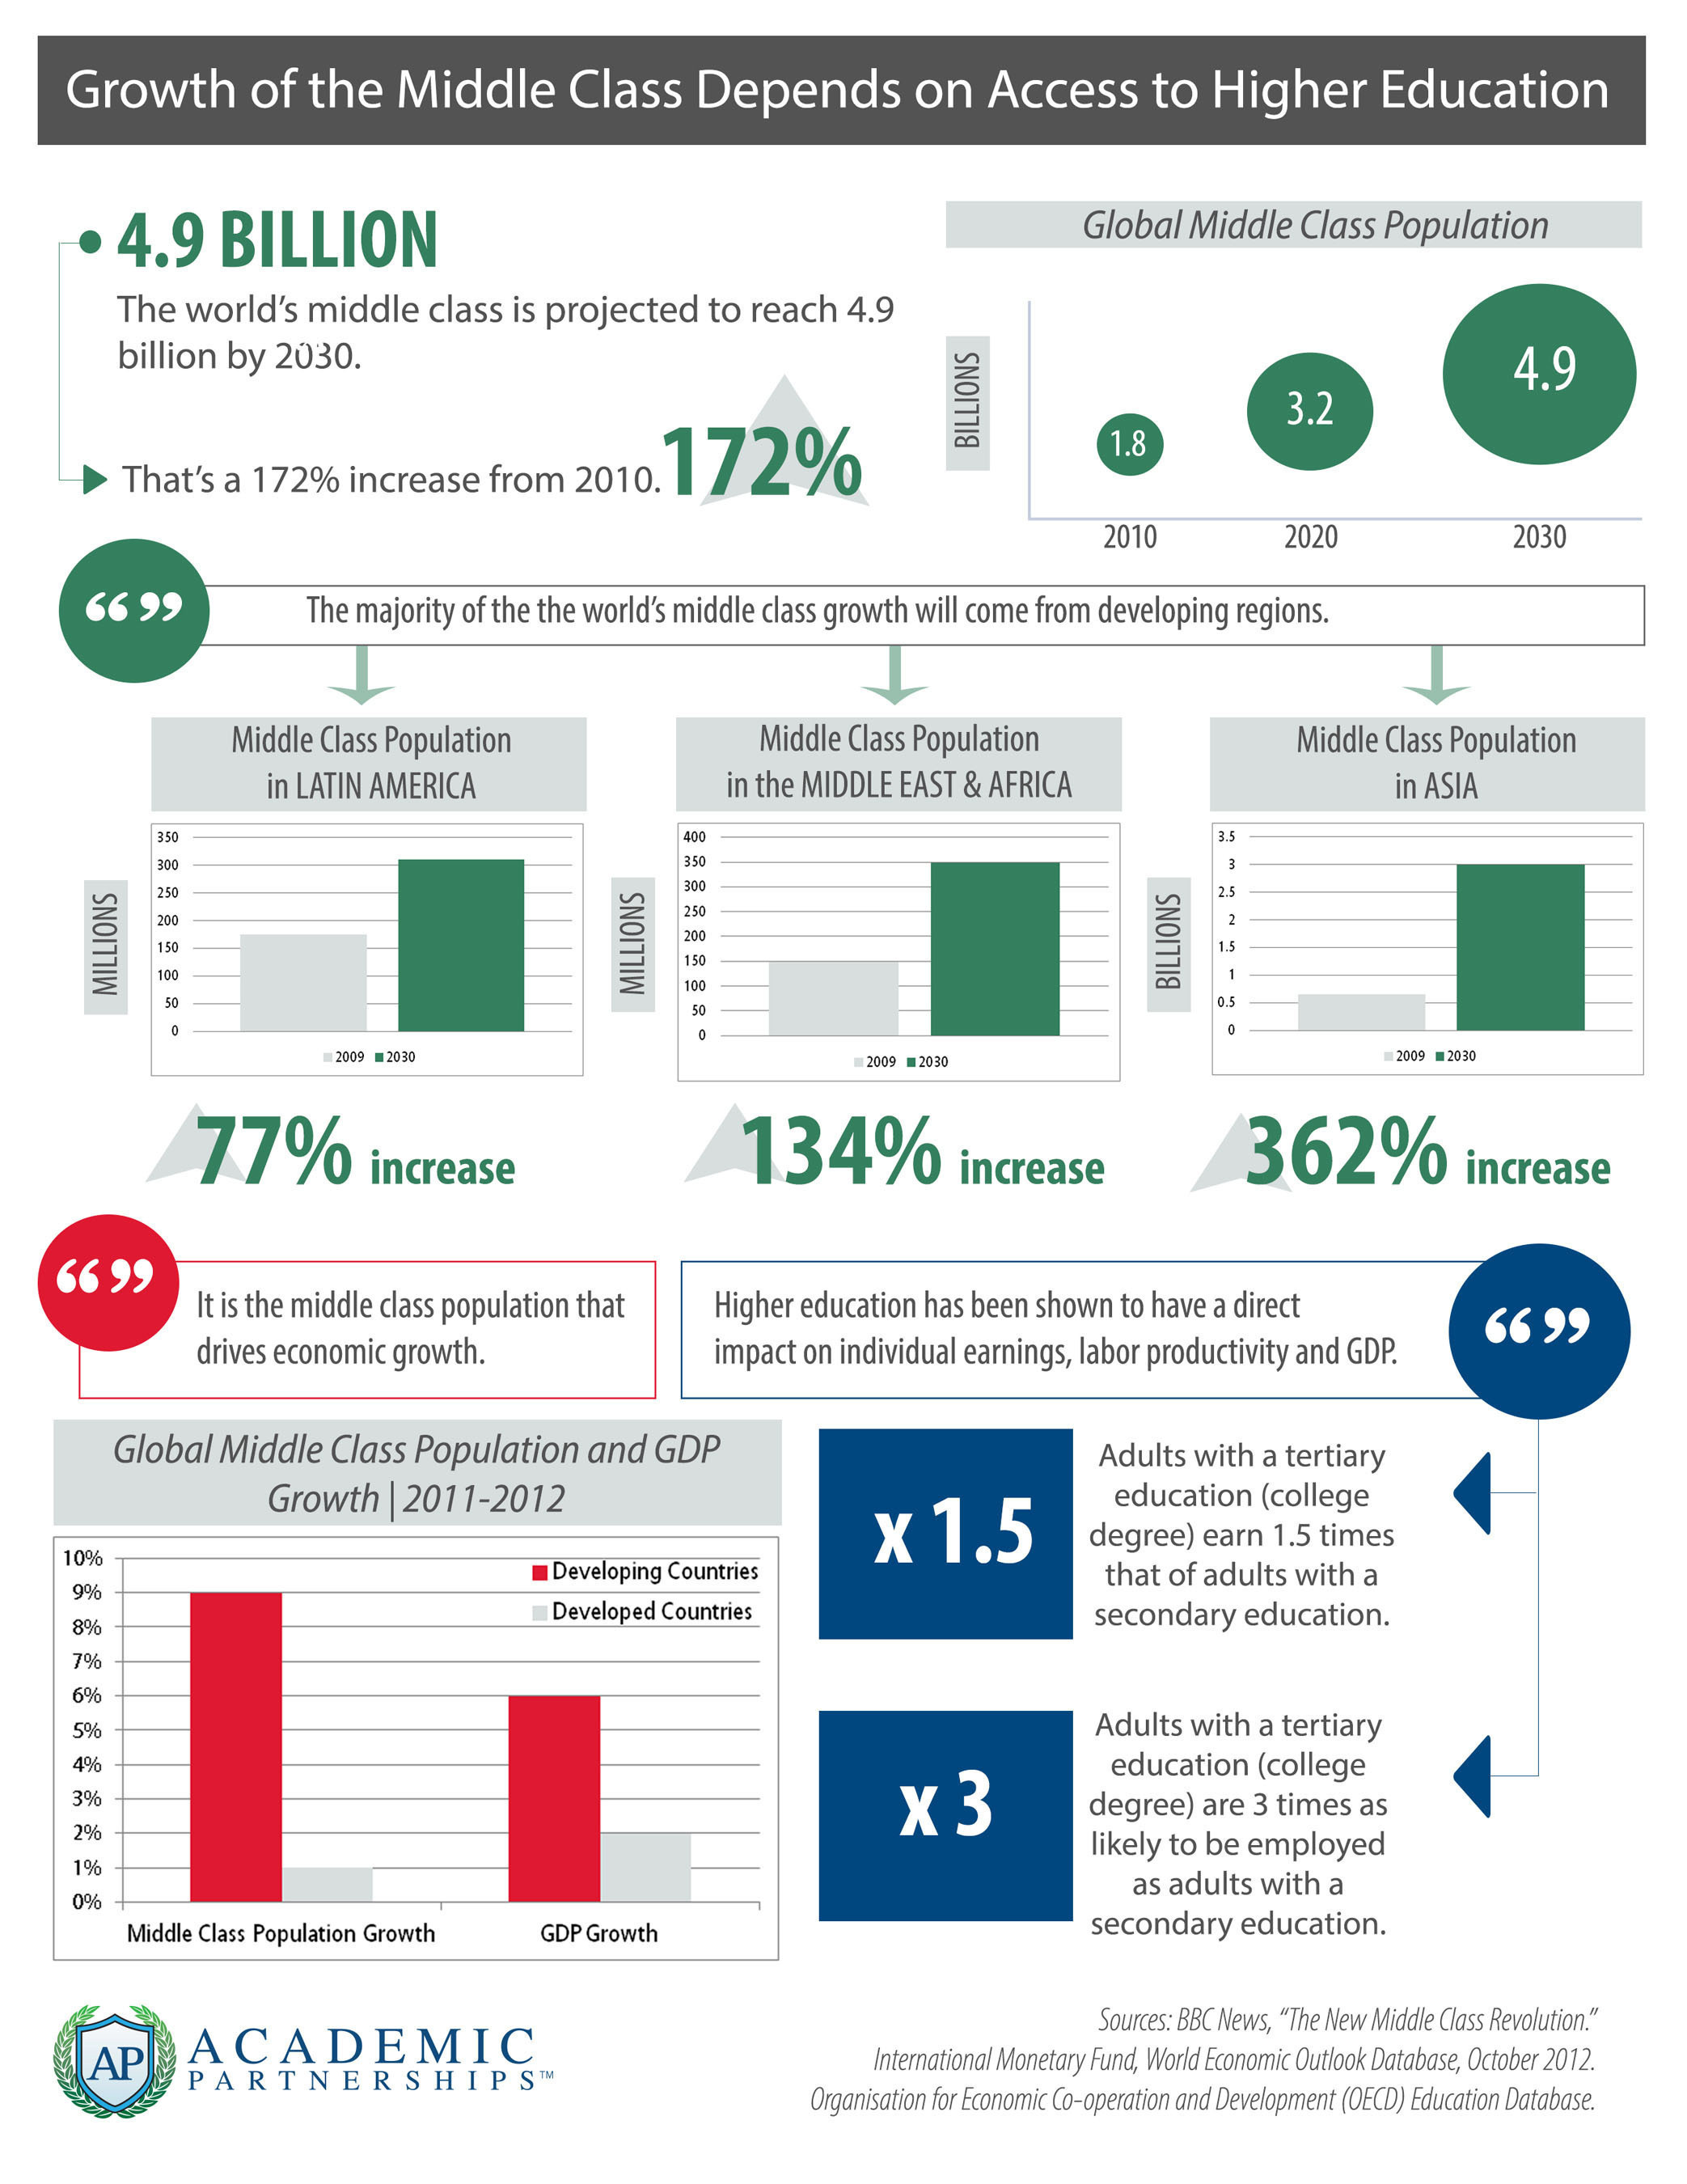 Infographic - The growth of the middle class depends on access to higher education. (PRNewsFoto/Academic Partnerships) (PRNewsFoto/ACADEMIC PARTNERSHIPS)